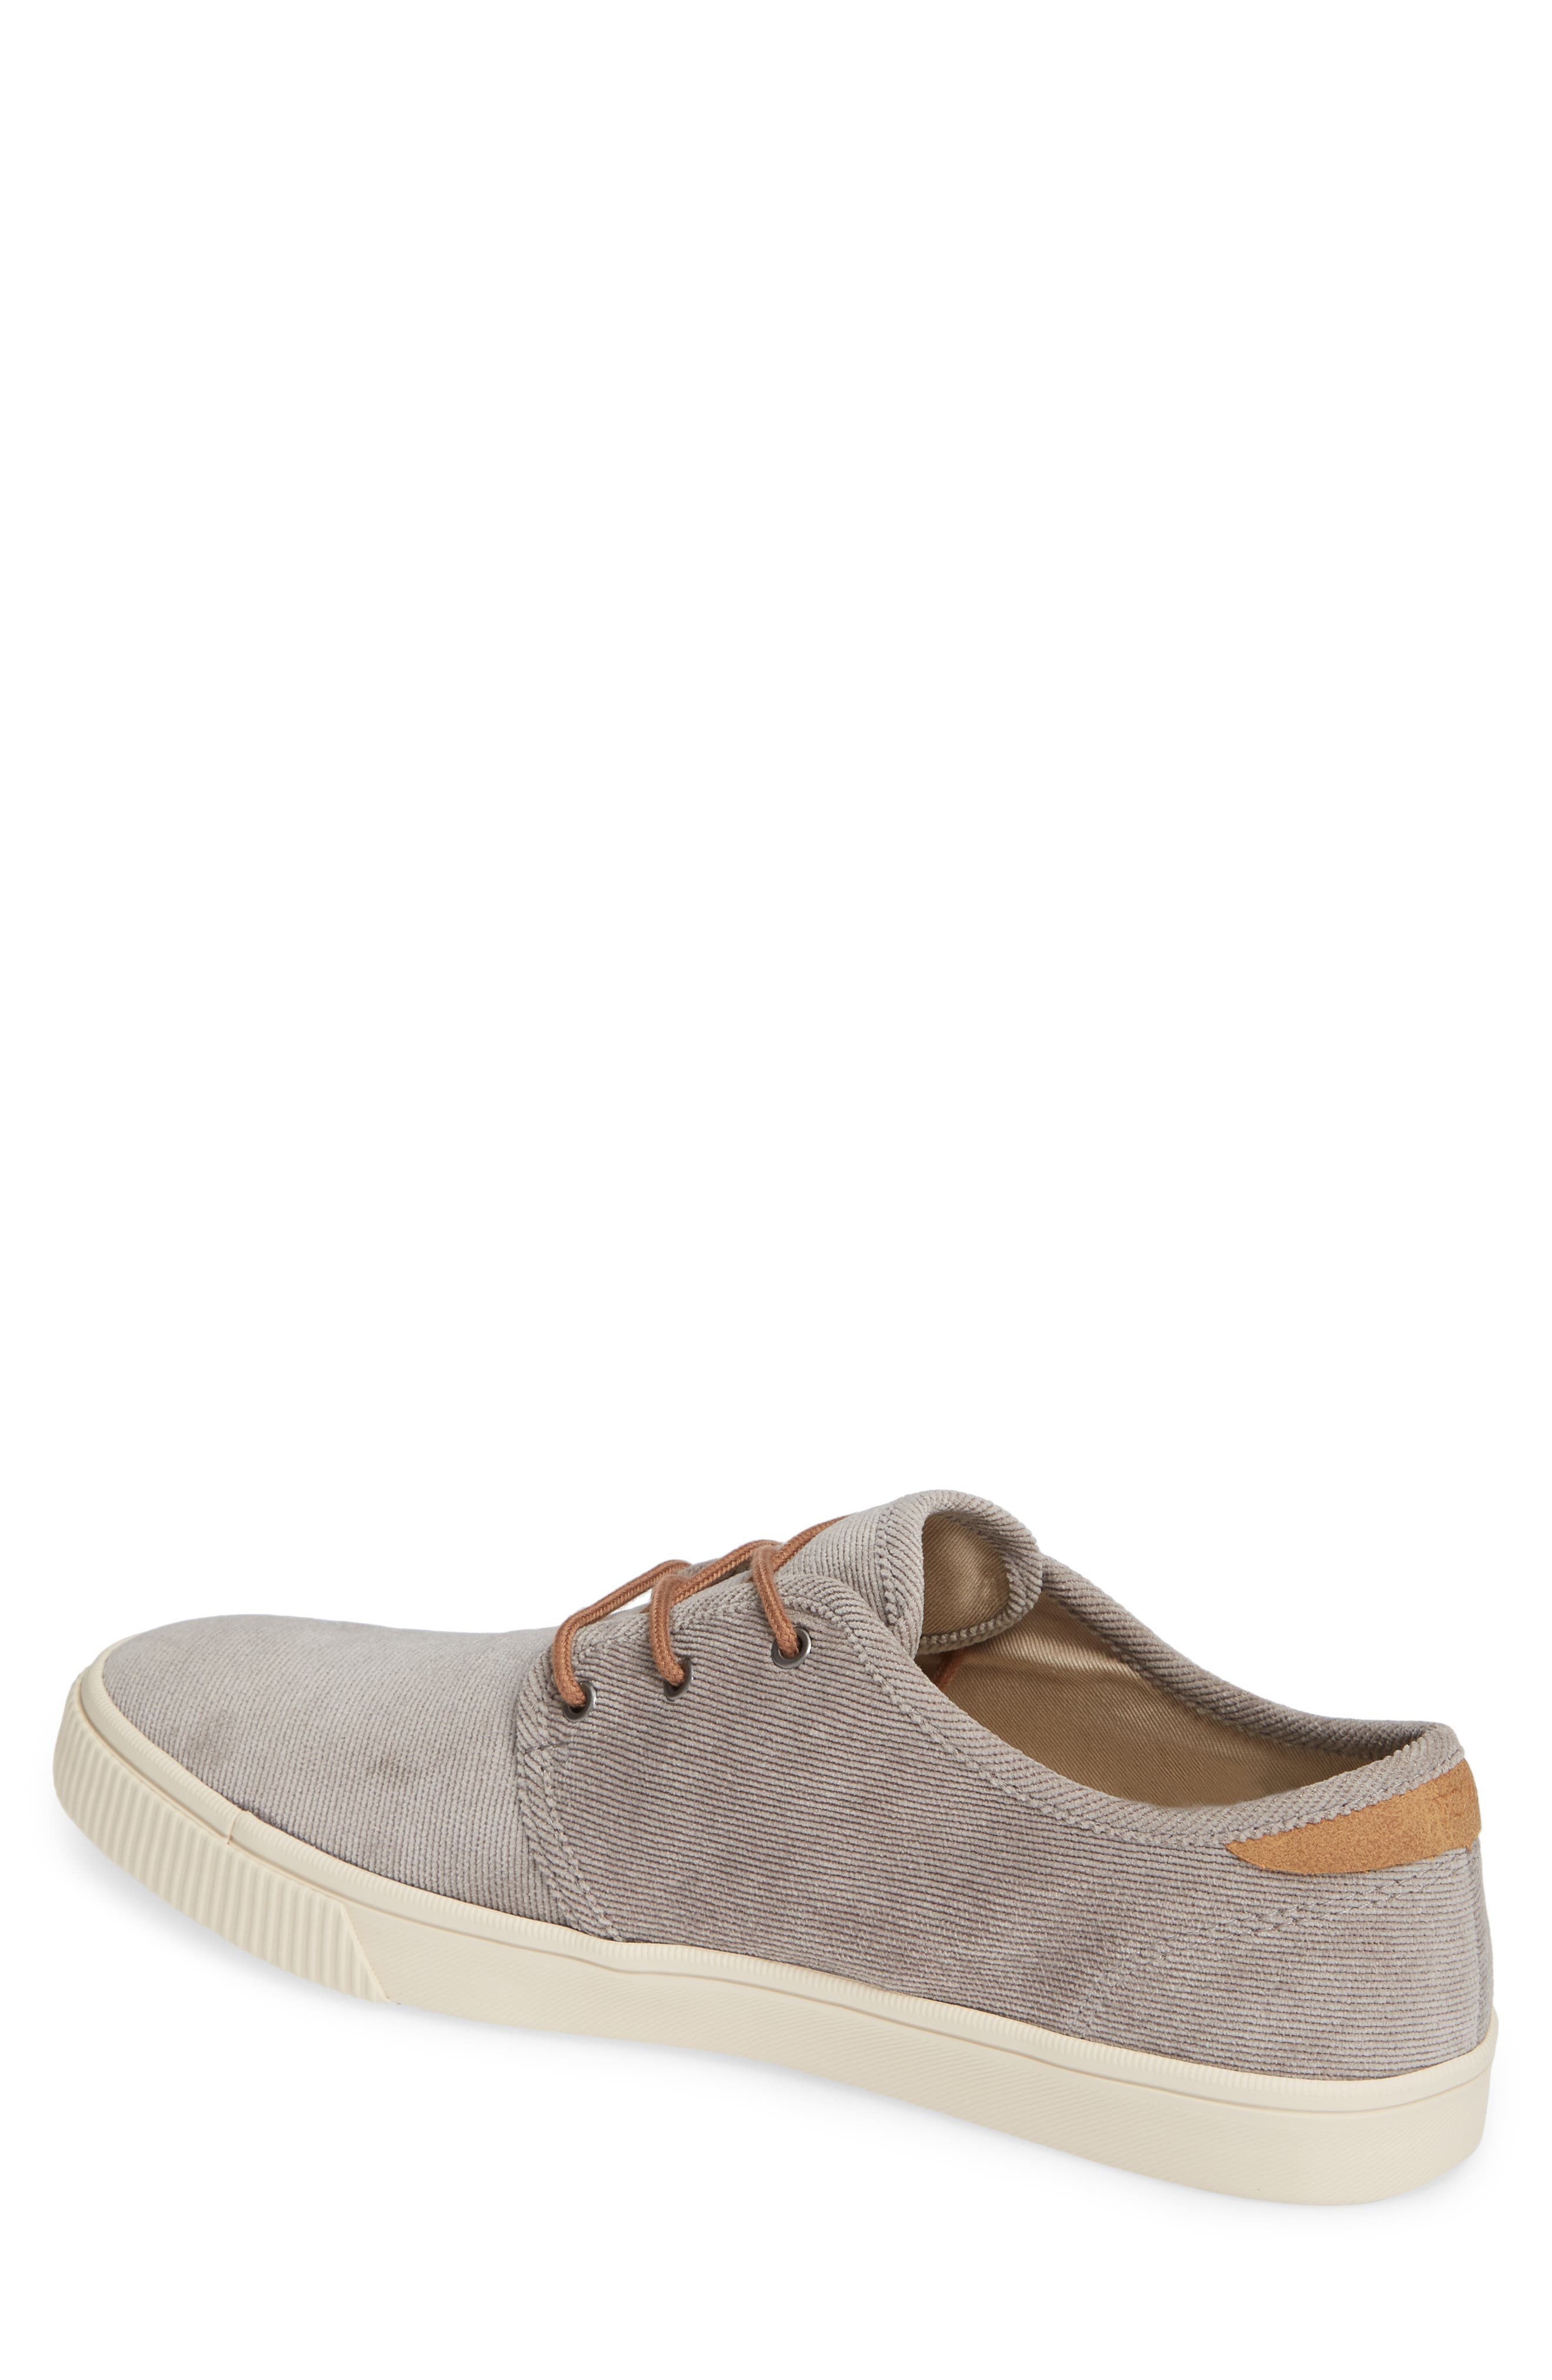 TOMS,                             Carlo Sneaker,                             Alternate thumbnail 2, color,                             020